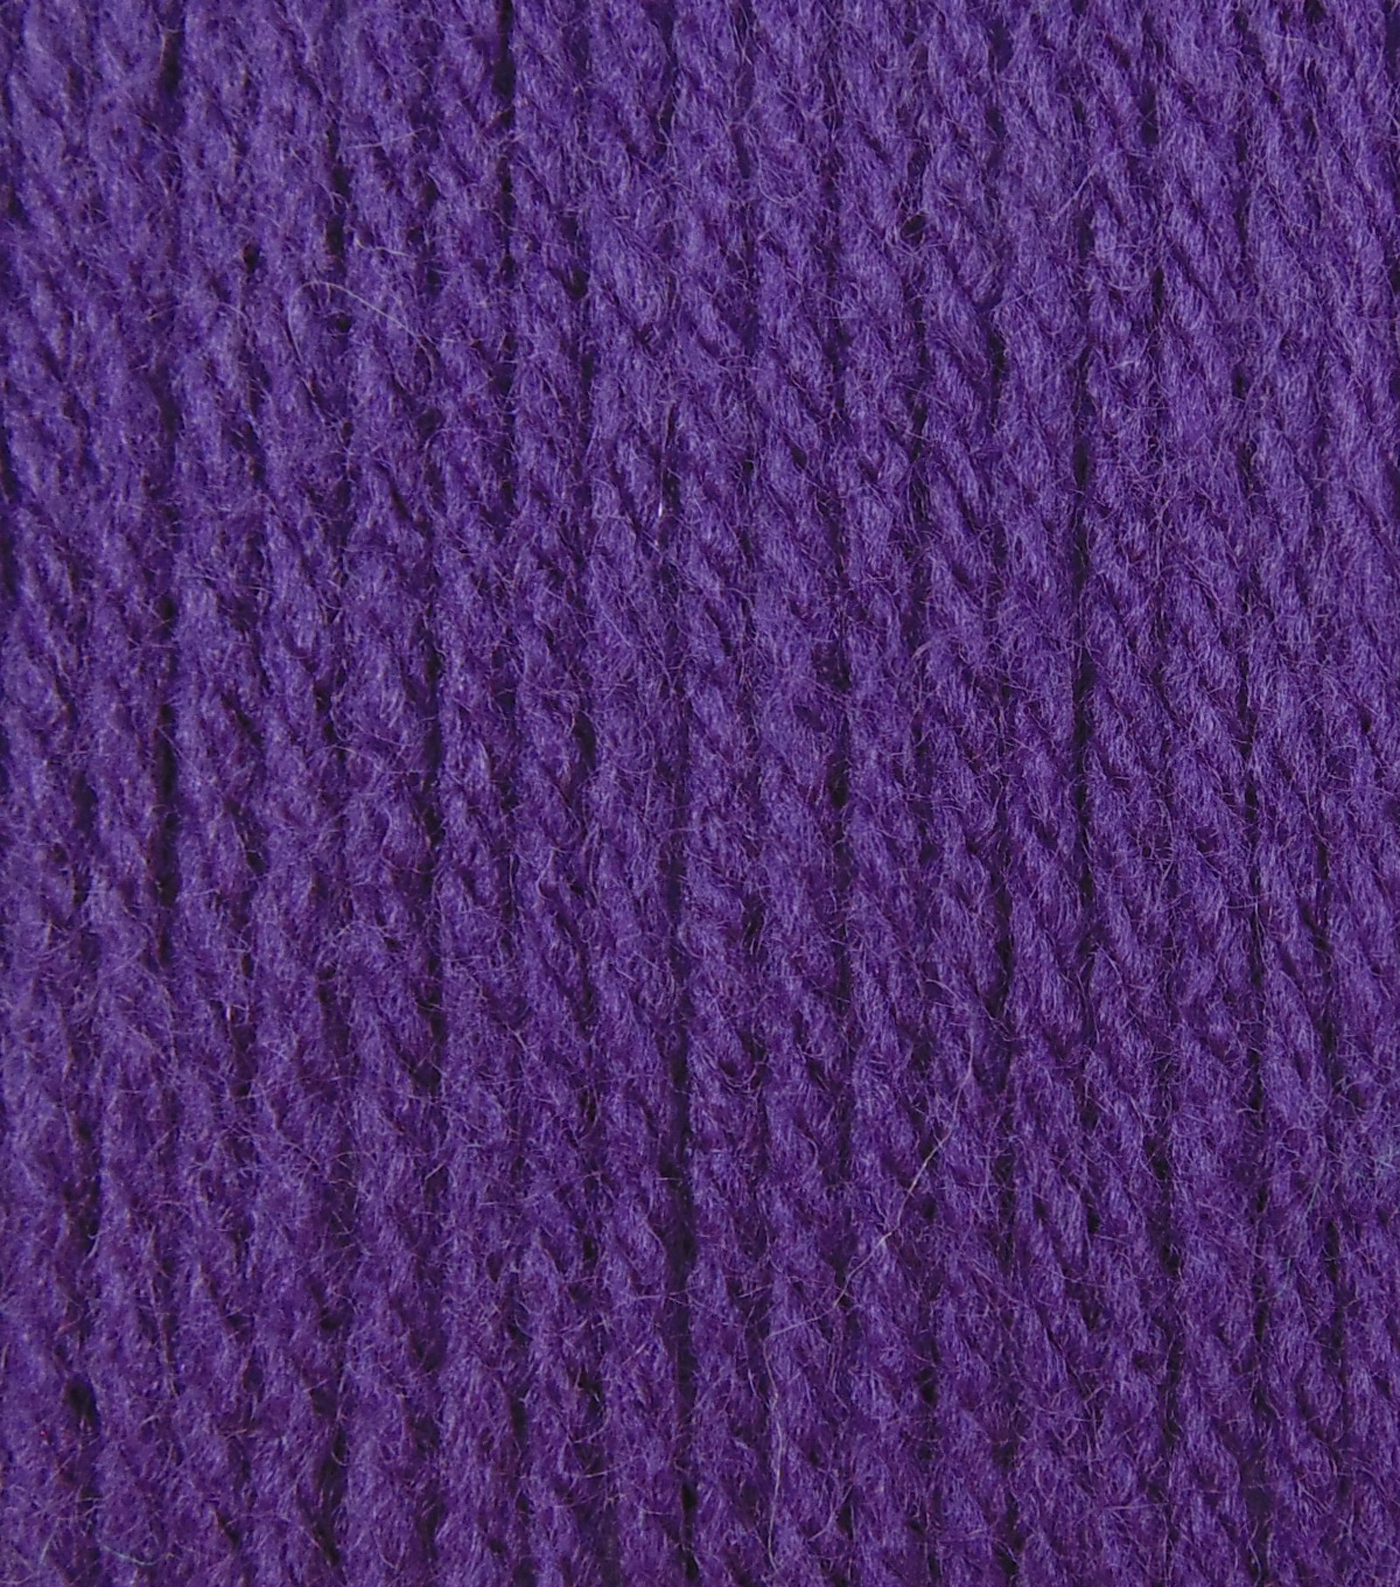 Big Twist Collection Value Worsted Yarn, Damson Purple